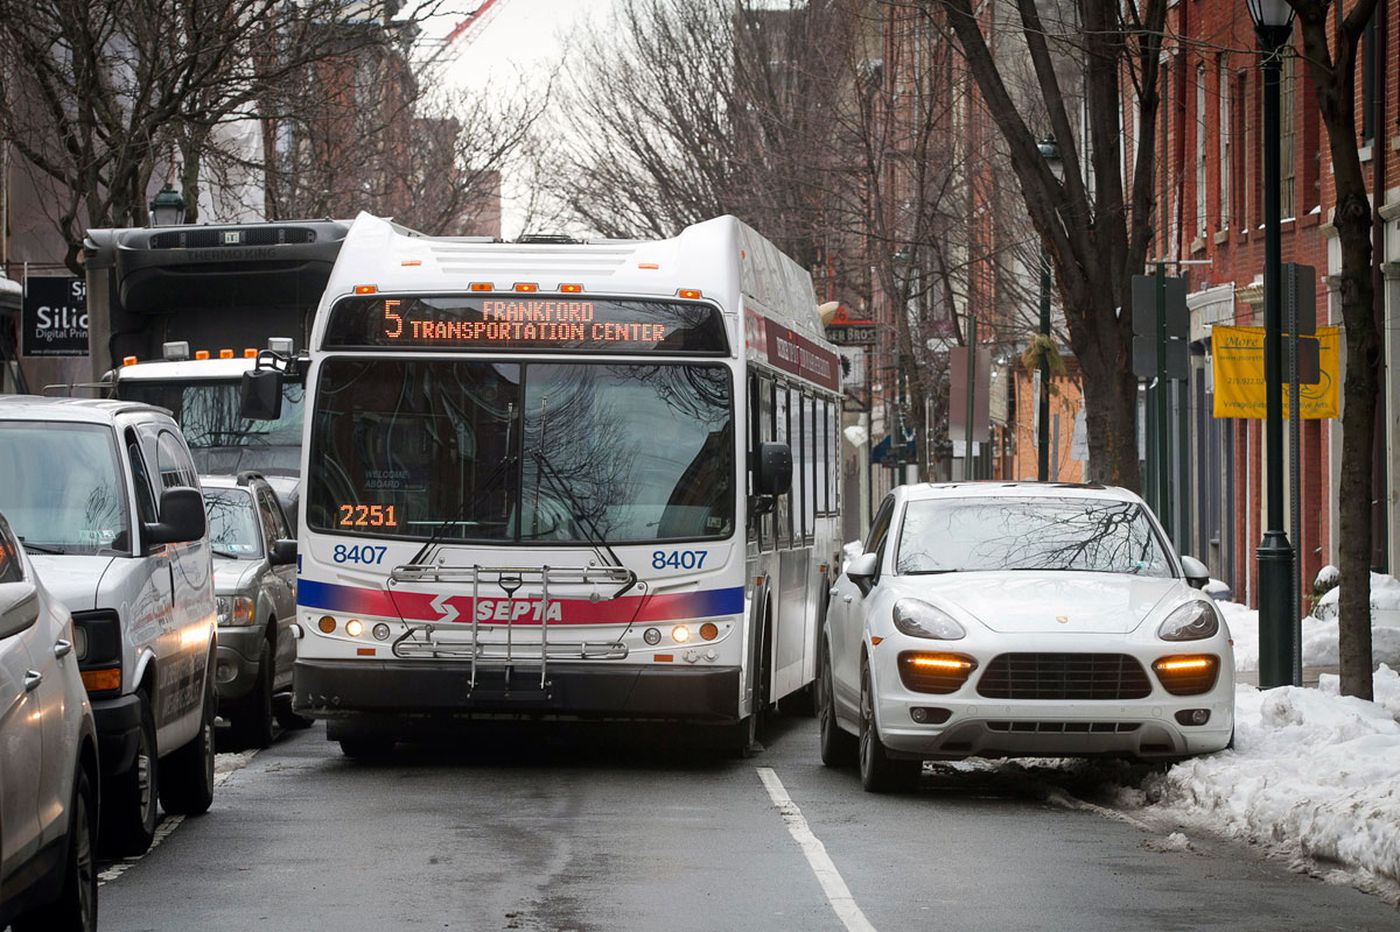 Rejected bus driver sues SEPTA over background checks